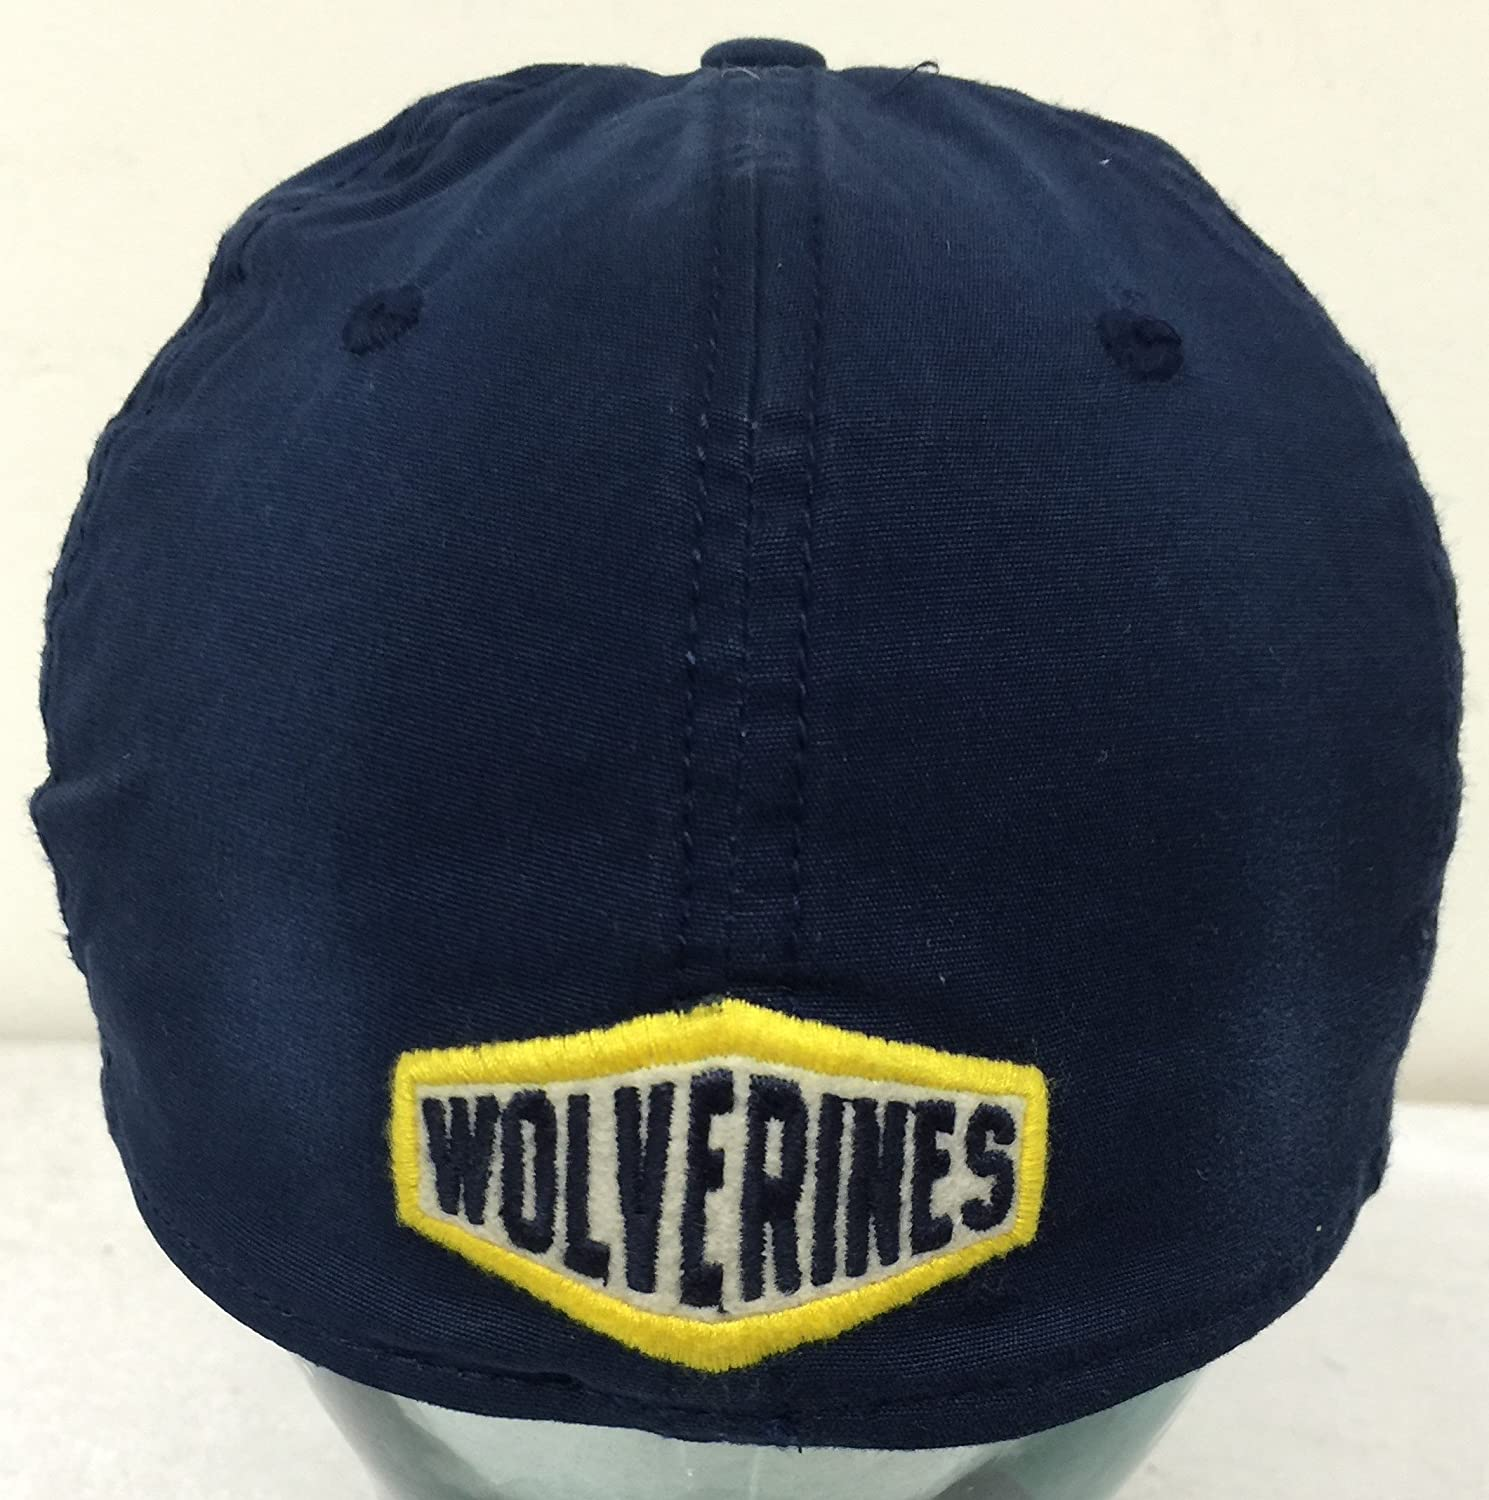 on sale 5297d d67ba Amazon.com   adidas Michigan Wolverines Distressed Navy Slouch Flex Hat Cap  Fitted S M   Sports   Outdoors